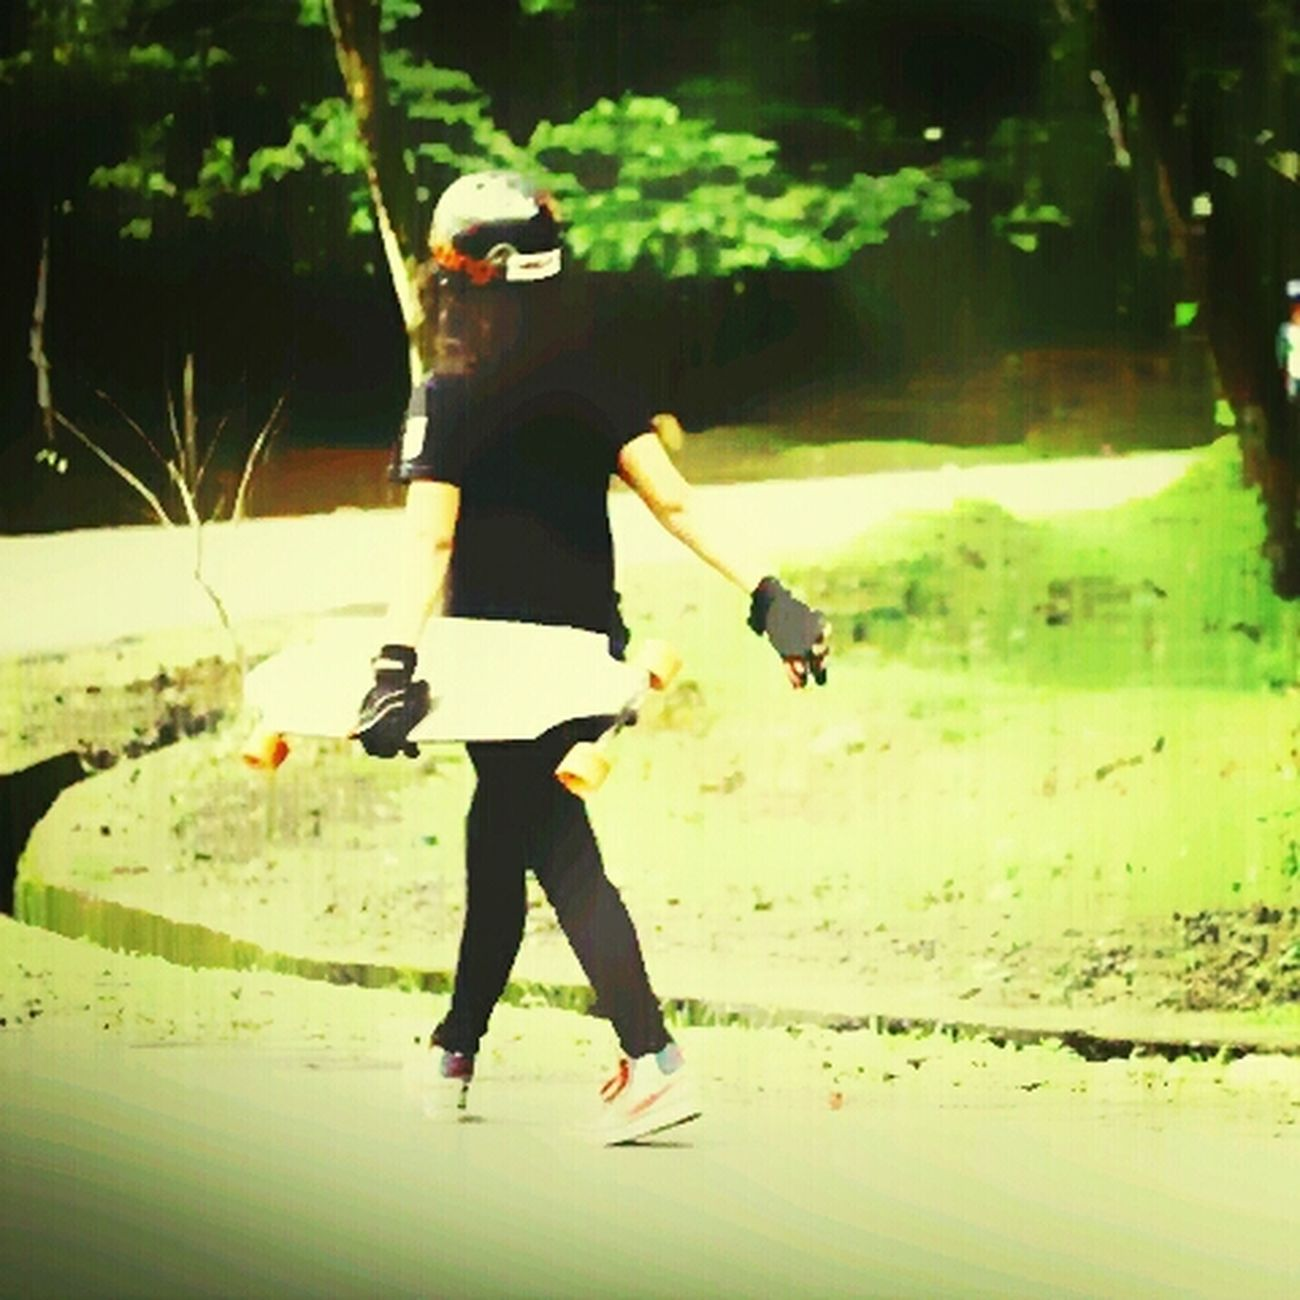 SkateboardLifeStyle That's Me Nature_collection Check This Out